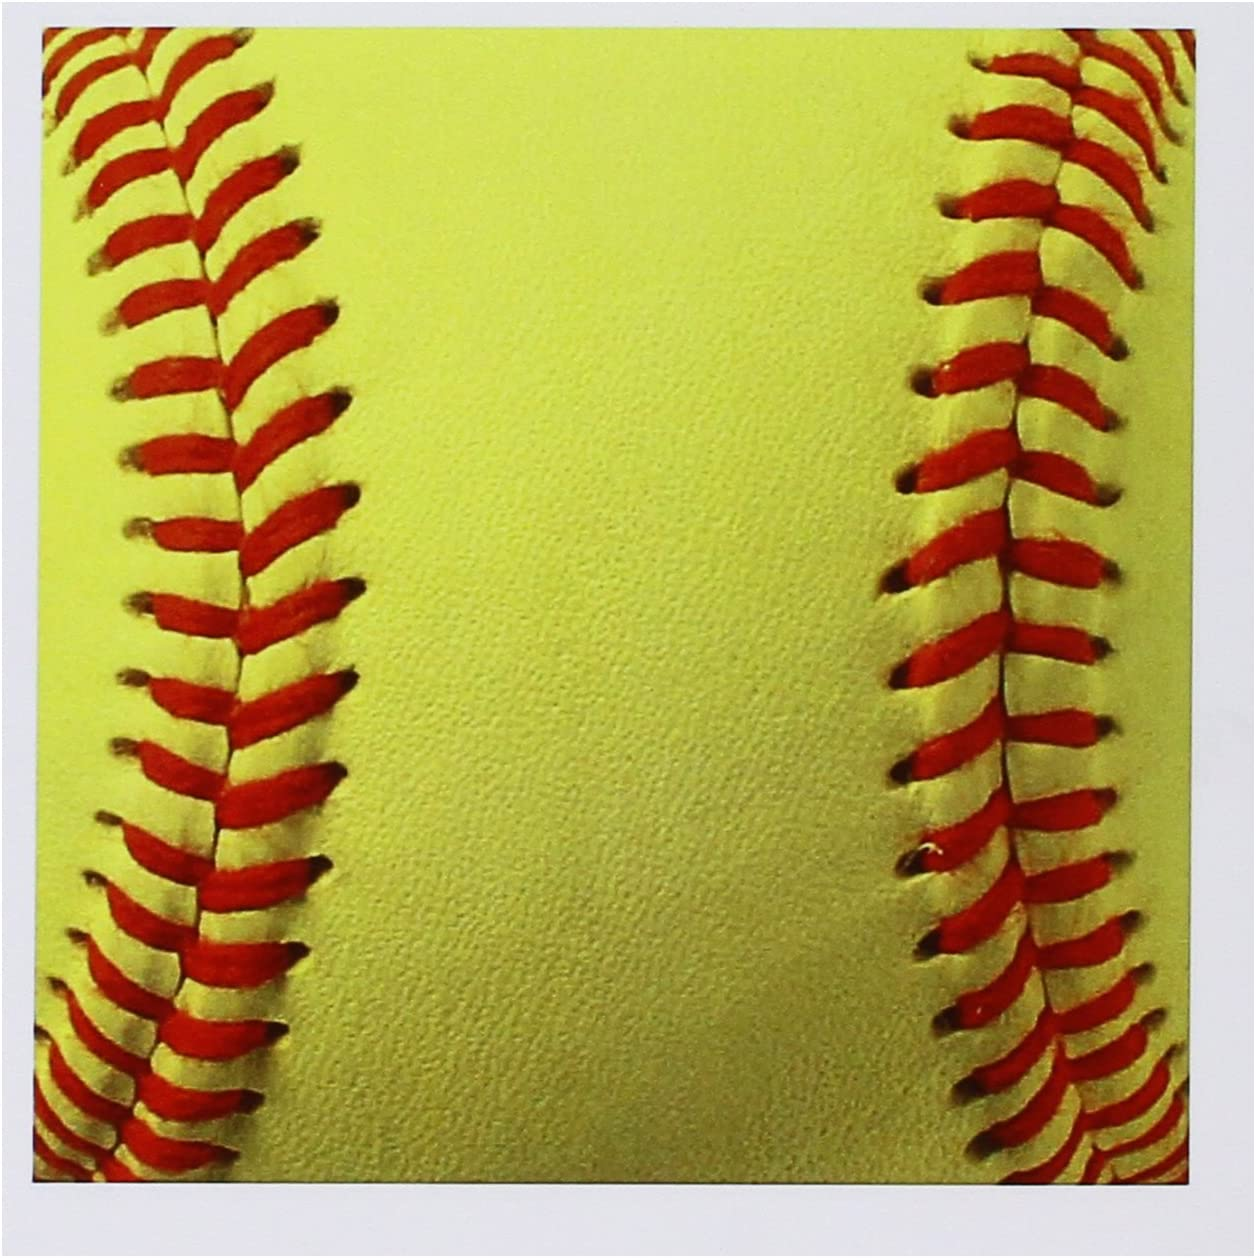 6 x 6 inches set of 12 gc/_120271/_2 yellow and red soft ball for sport fans 3dRose Softball close-up photography print Greeting Cards